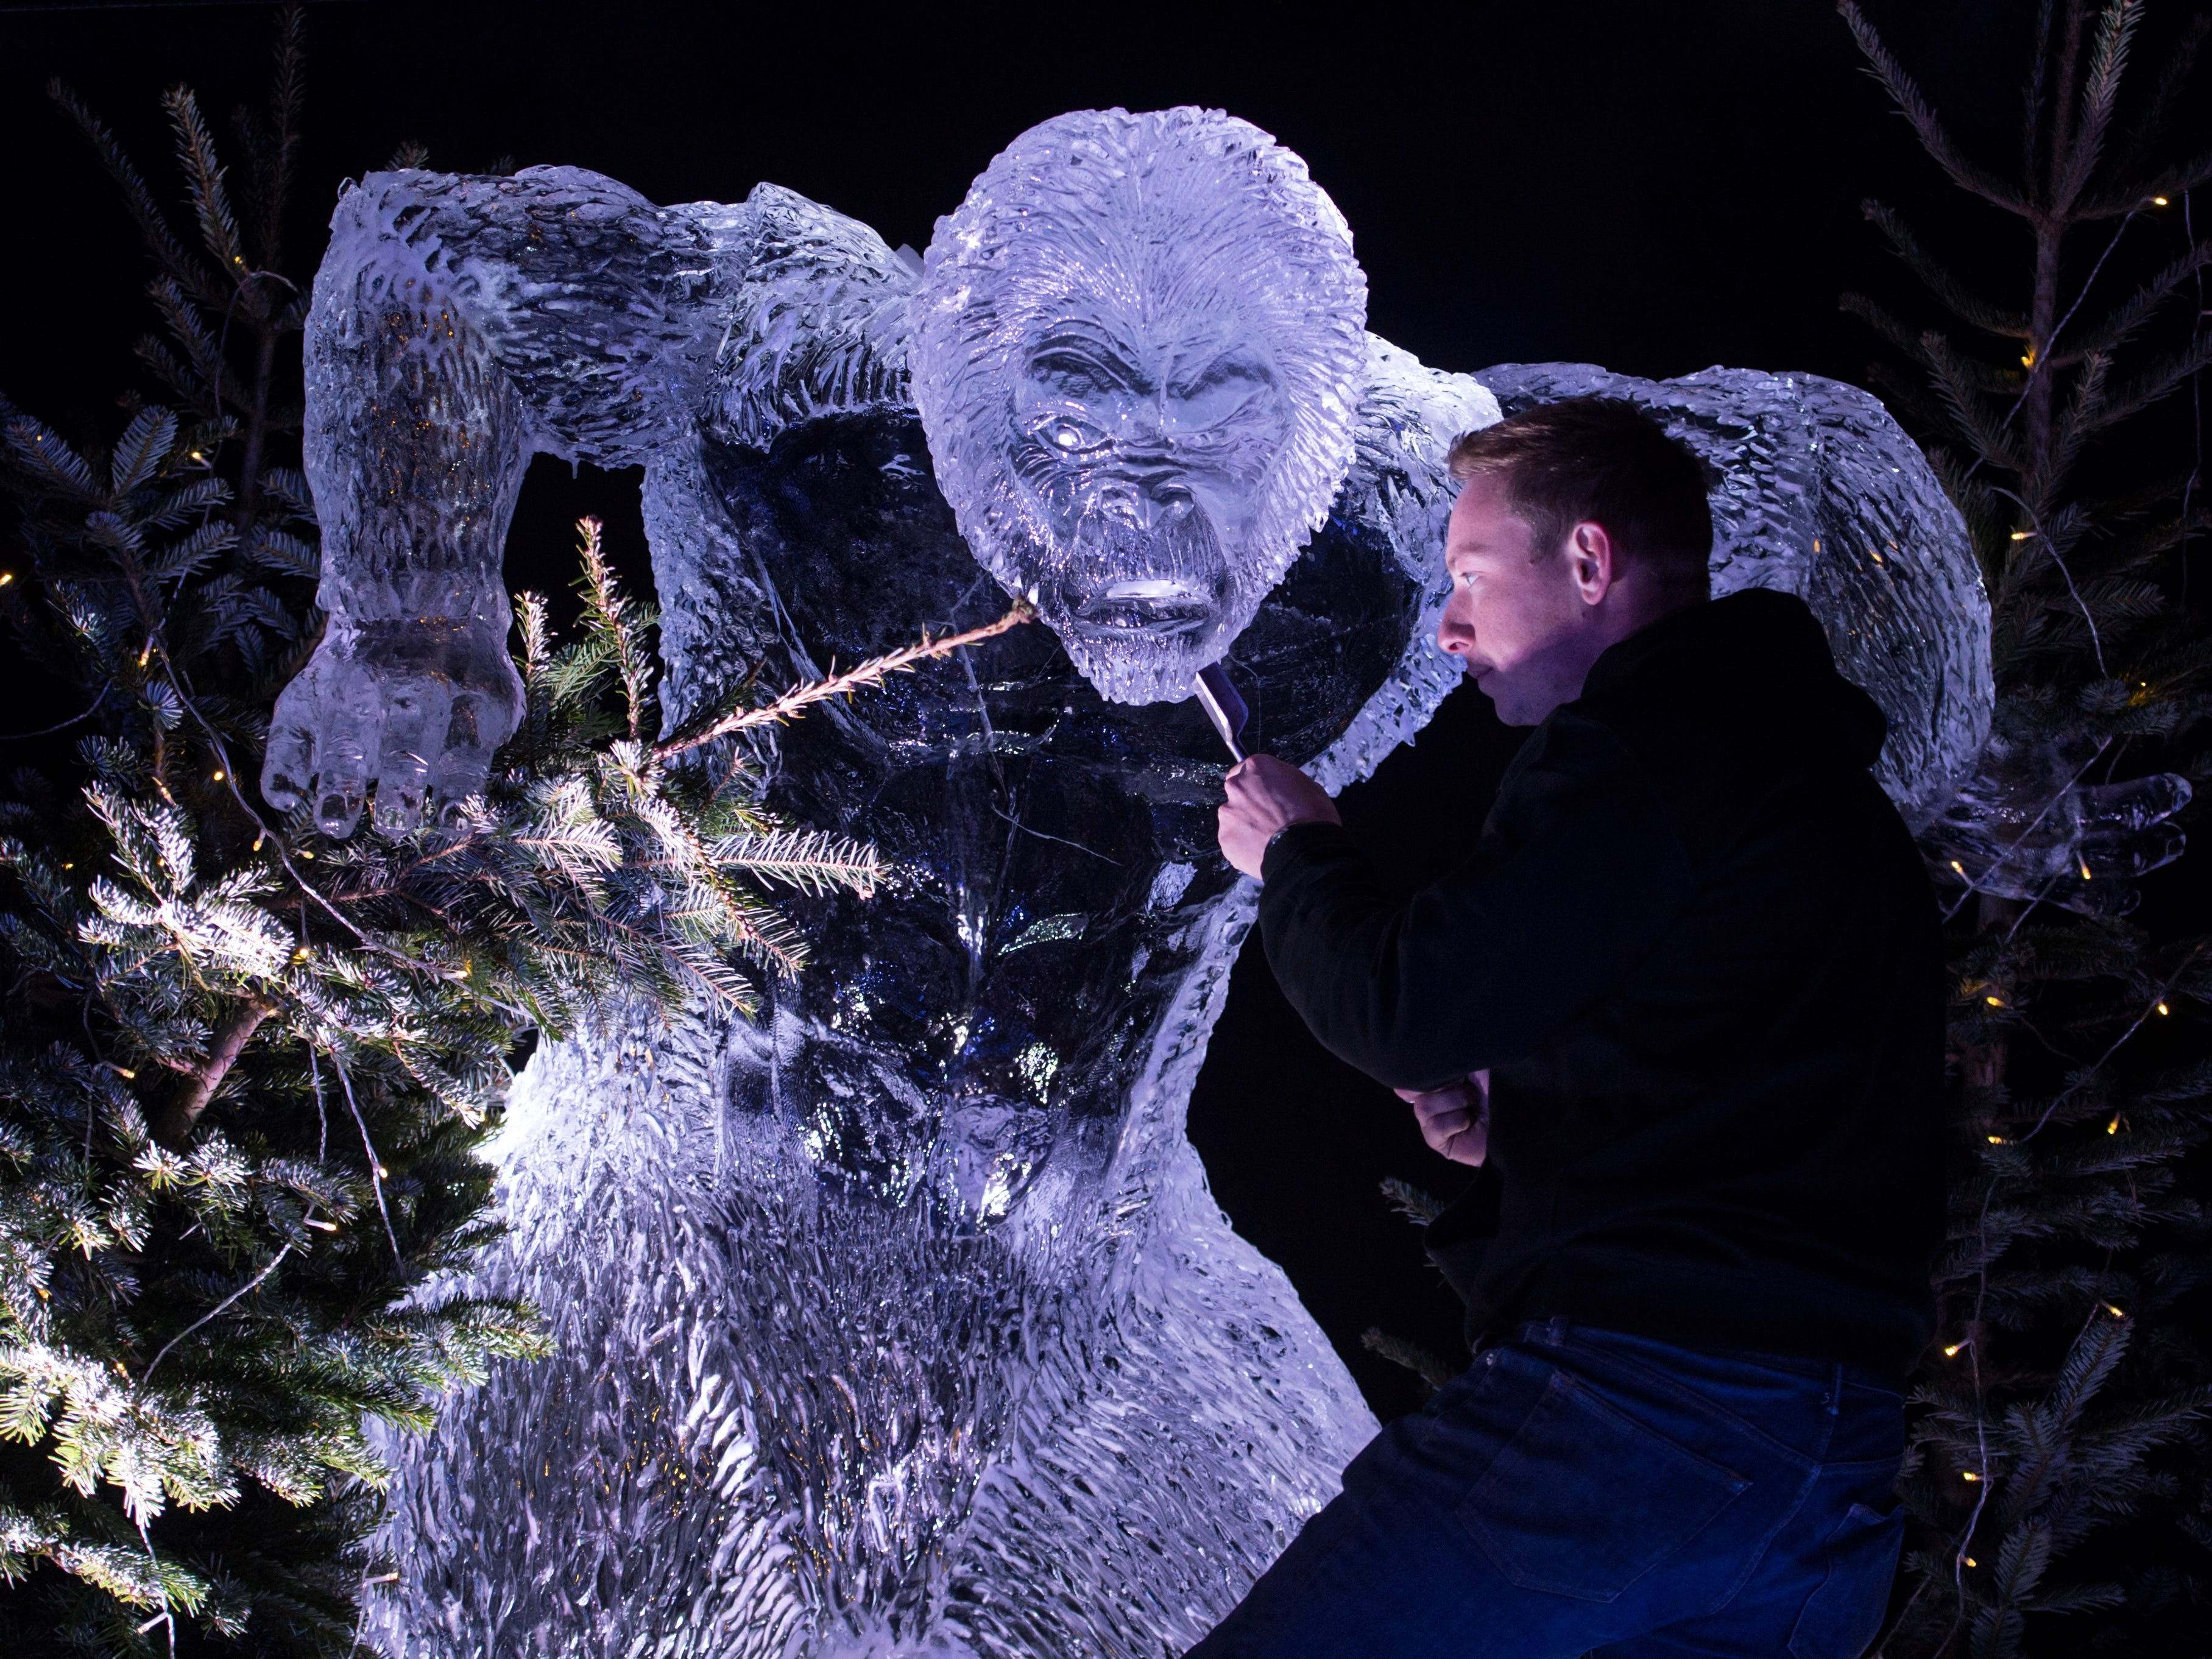 Ice sculptor Mark Hackney puts the finishing touches to a yeti carved from ice in the 'Ice Village', during a photocall to promote the 'Ice Village', in central Manchester, northern England on November 9, 2018. - The Ice Village Manchester, which is open until January 5, 2019, features an ice cavern, ice sculptures and frozen ice bar all carved using 250 tonnes of solid ice.